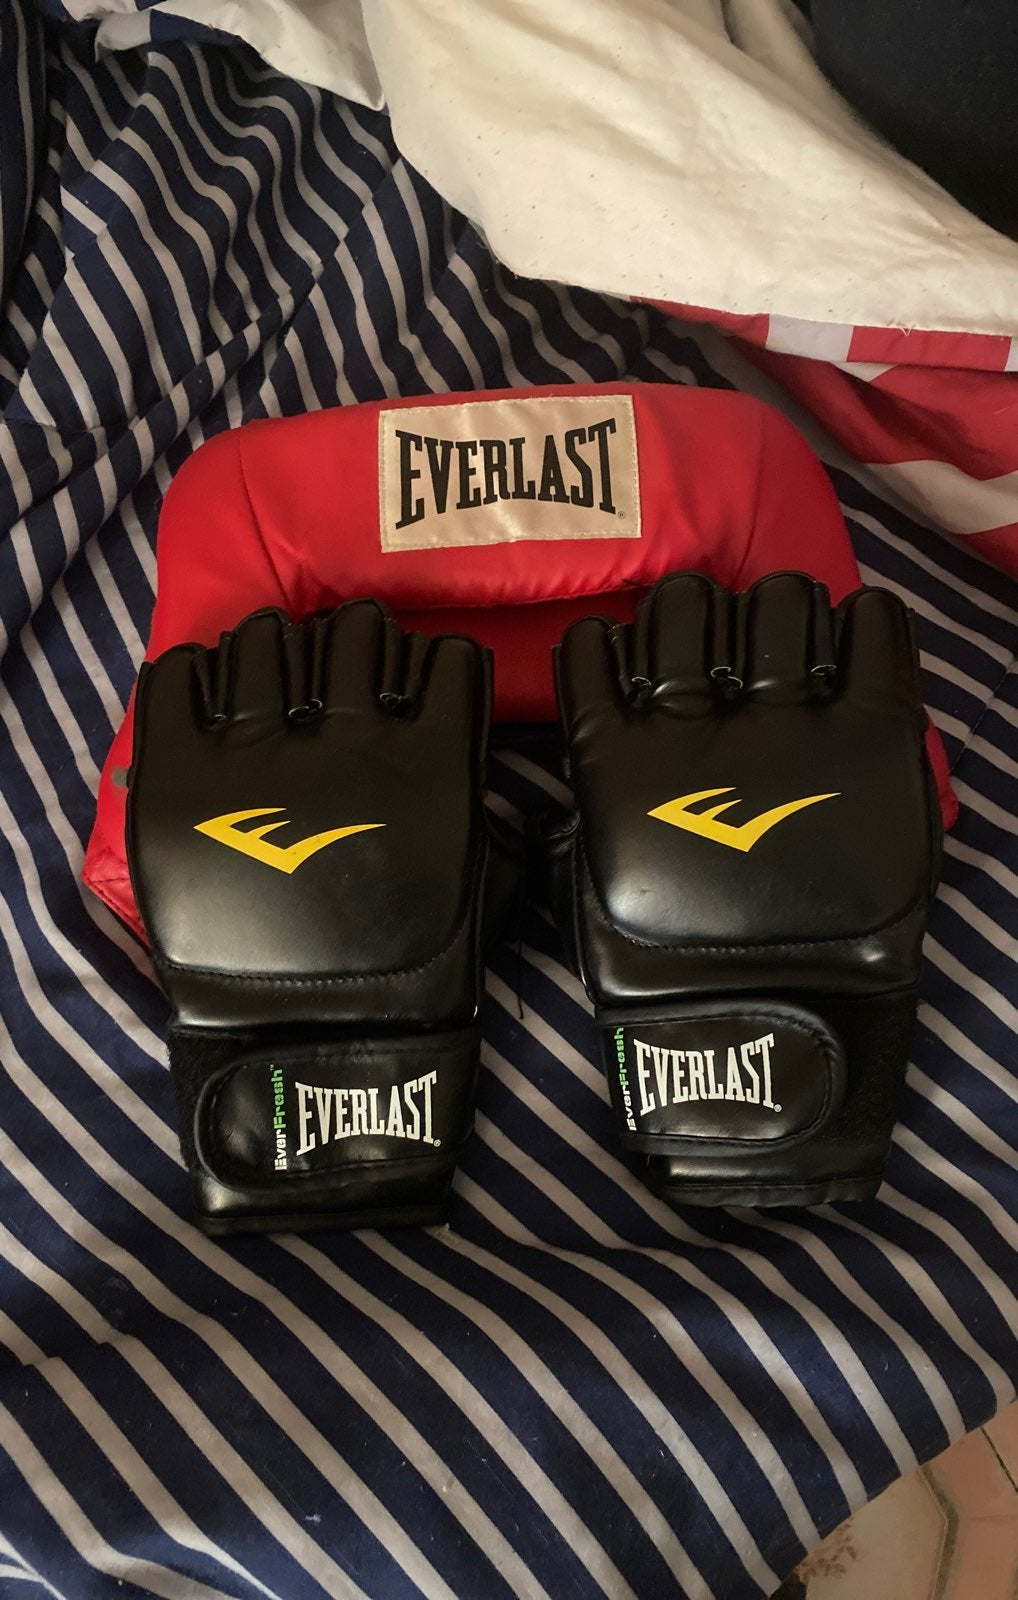 Everlast Boxing Gloves and headgear